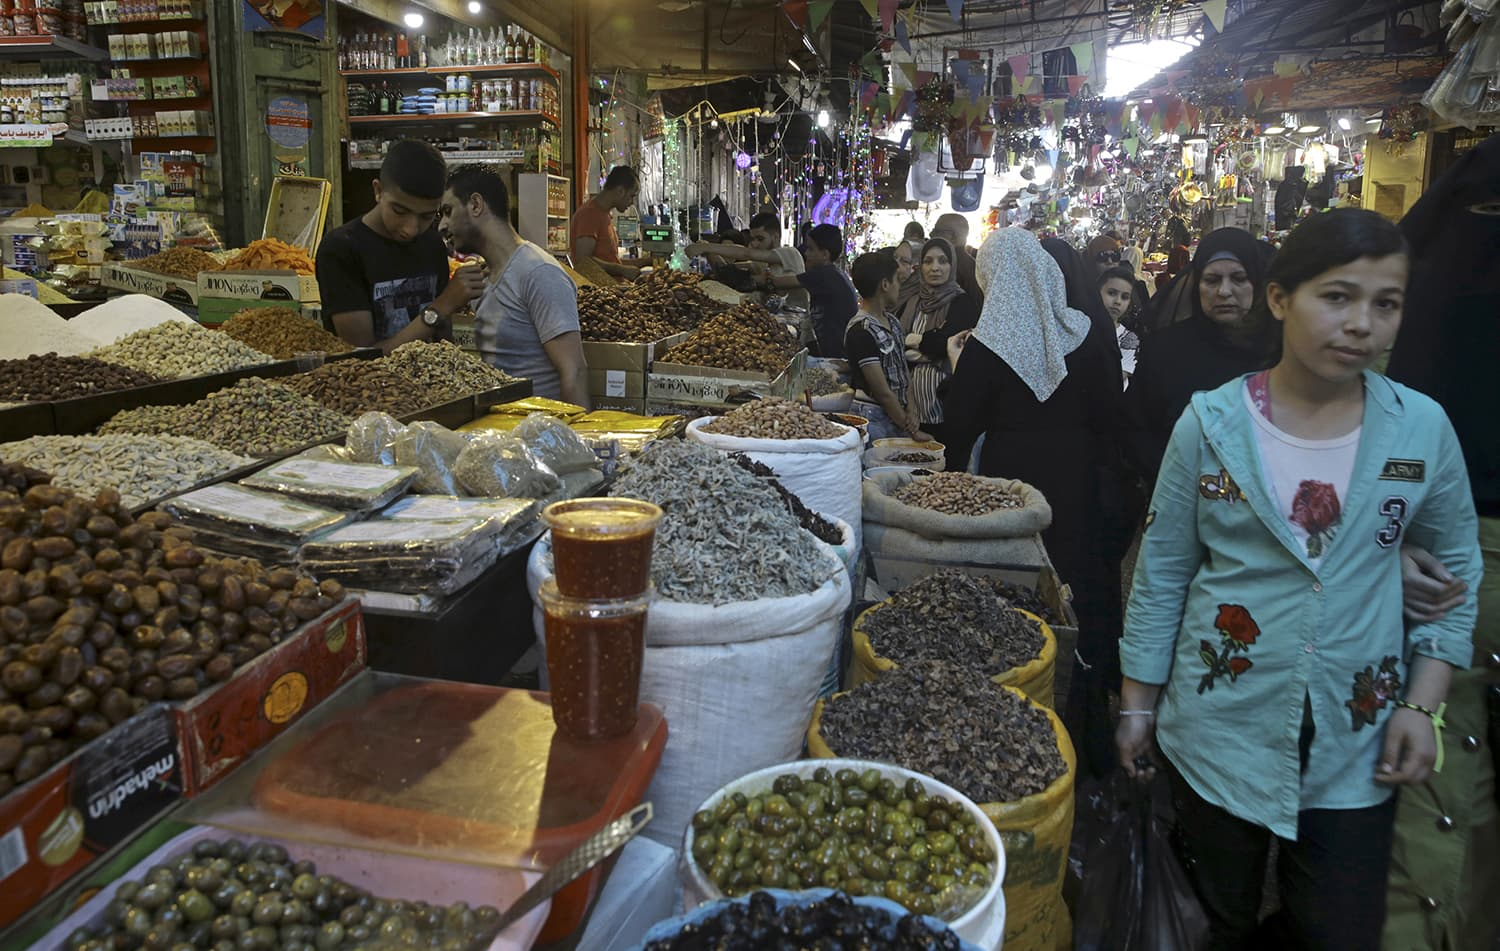 Palestinians shop for the holy month of Ramazan at the main market in Gaza City on Wednesday. — AP